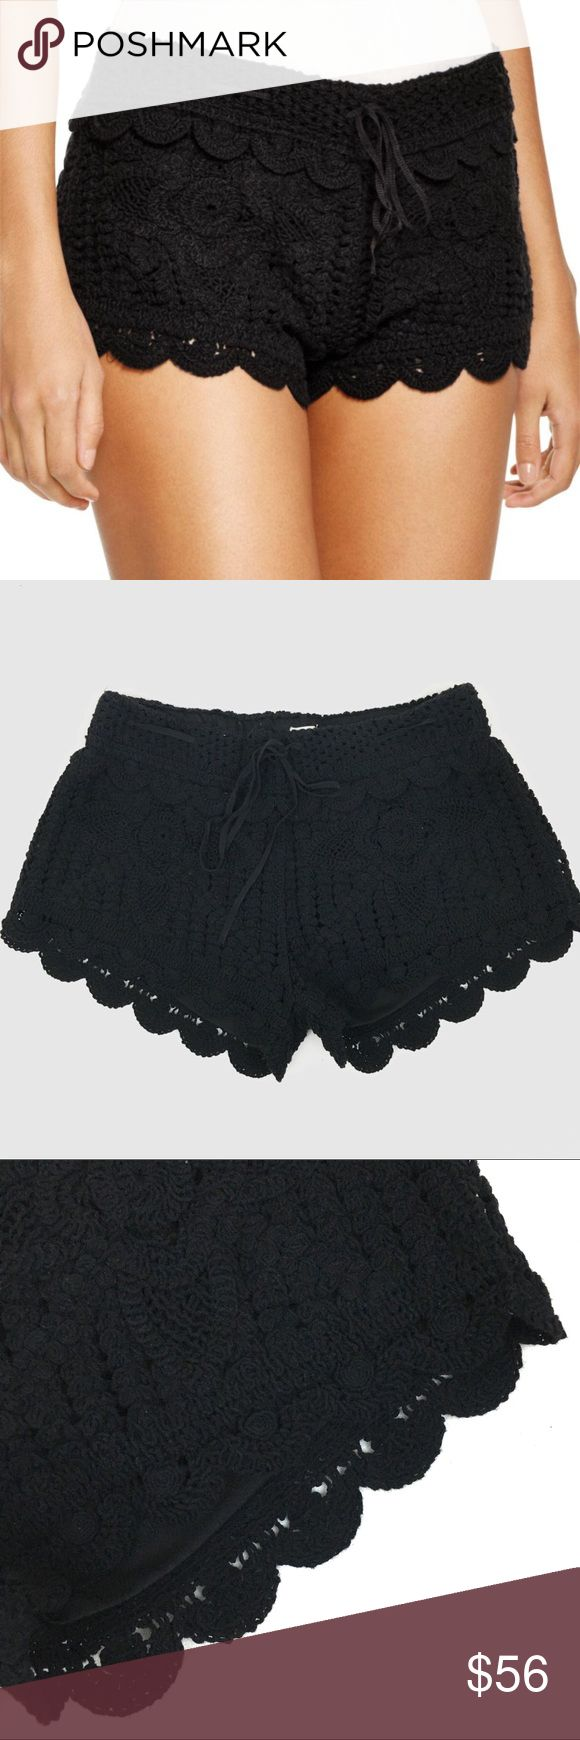 [Surf Gypsy] NWOT Black Crochet Shorts NWOT never worn! Black Surf Gypsy Crochet Shorts. Purchased at a boutique in LA. There is a soft thin lining on the inside to keep from being see through. Adjustable ribbon tie. Always open to considering offers! Surf Gypsy Shorts